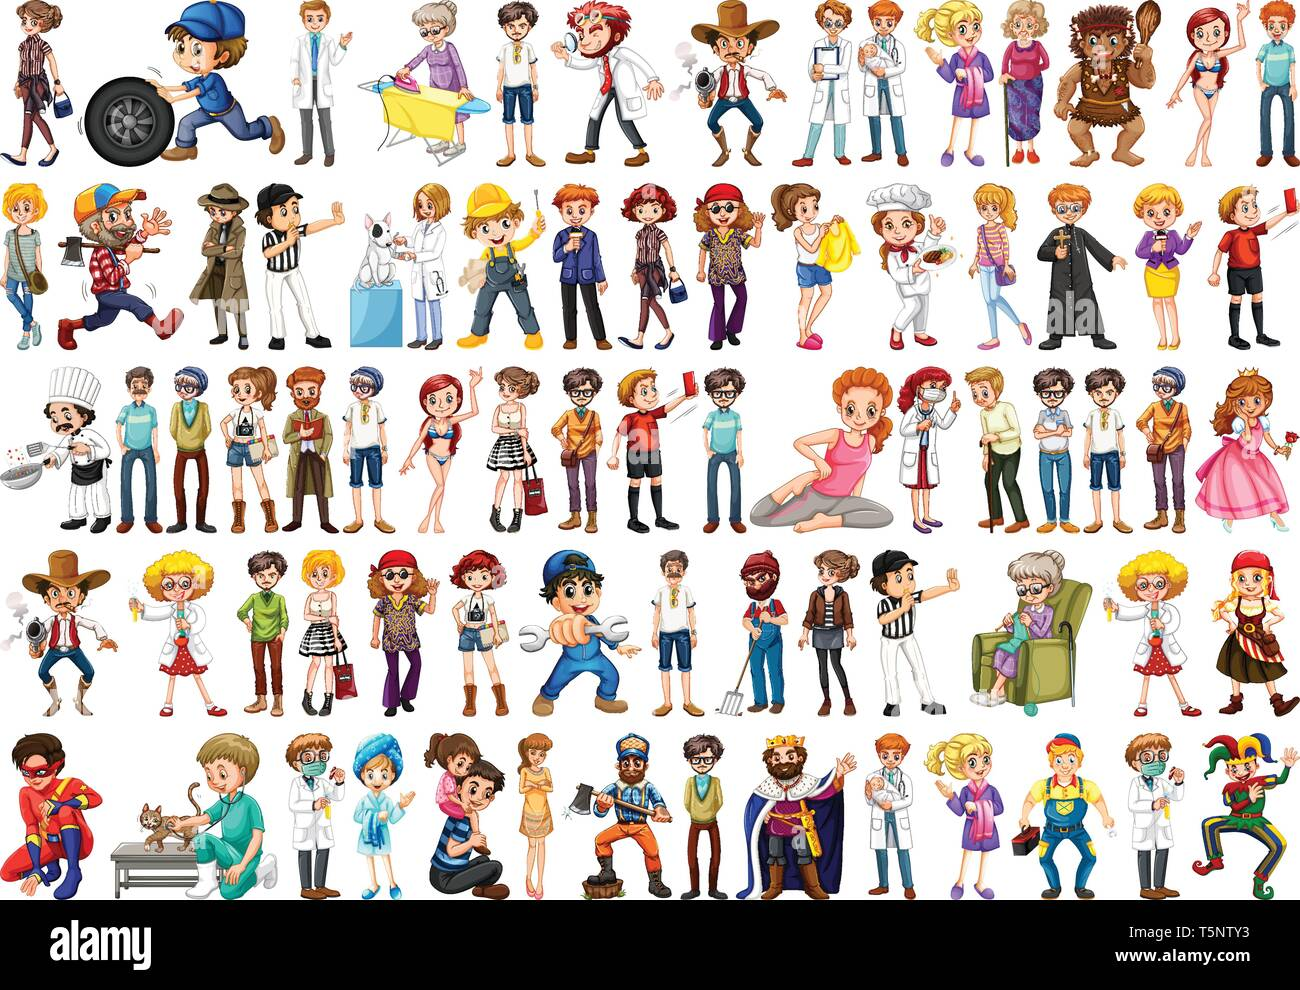 Set of different people illustration - Stock Vector